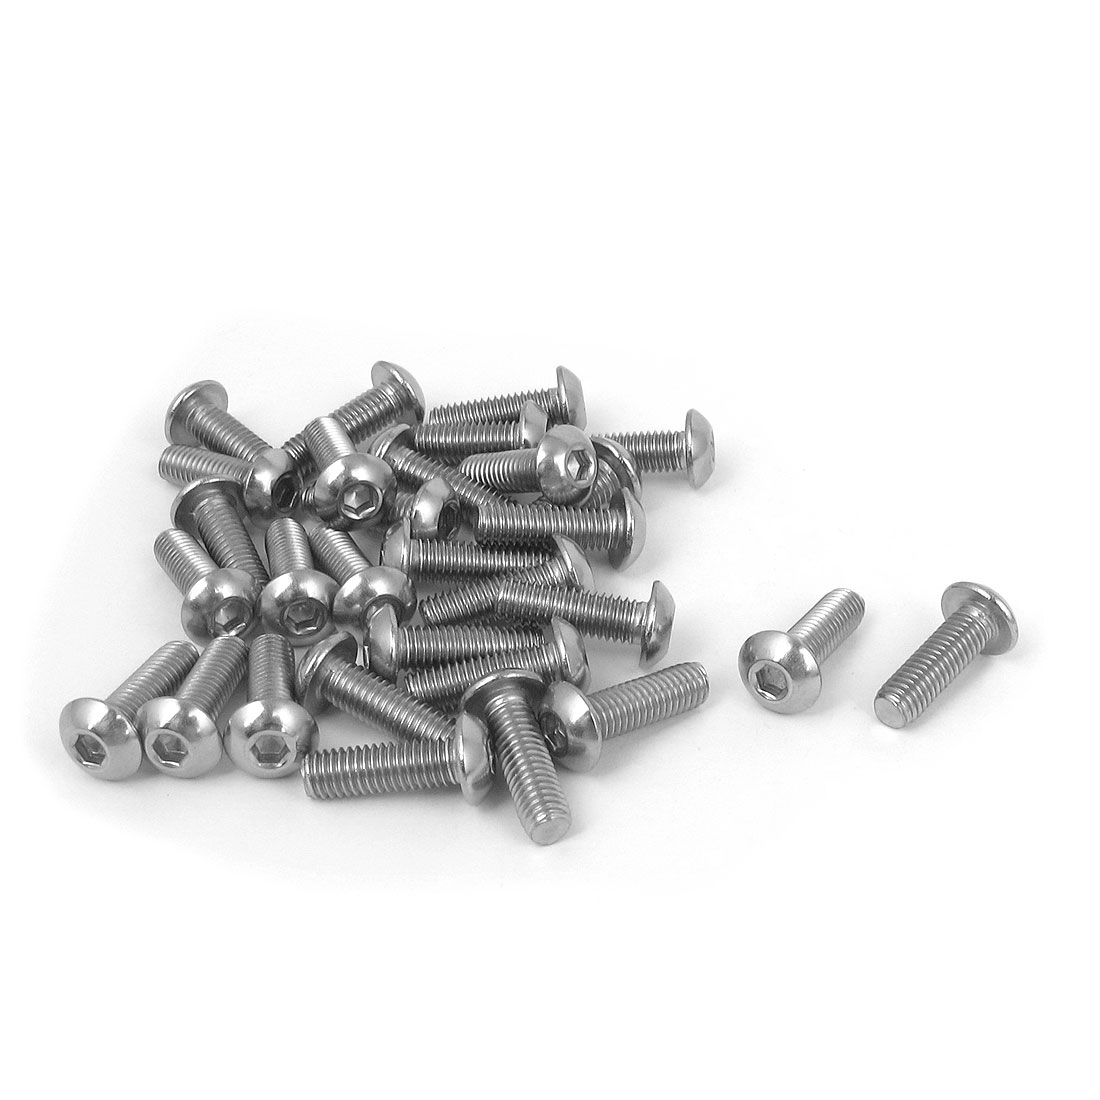 M5x16mm 304 Stainless Steel Hex Socket Machine Countersunk Round Head Screw Bolts 30PCS